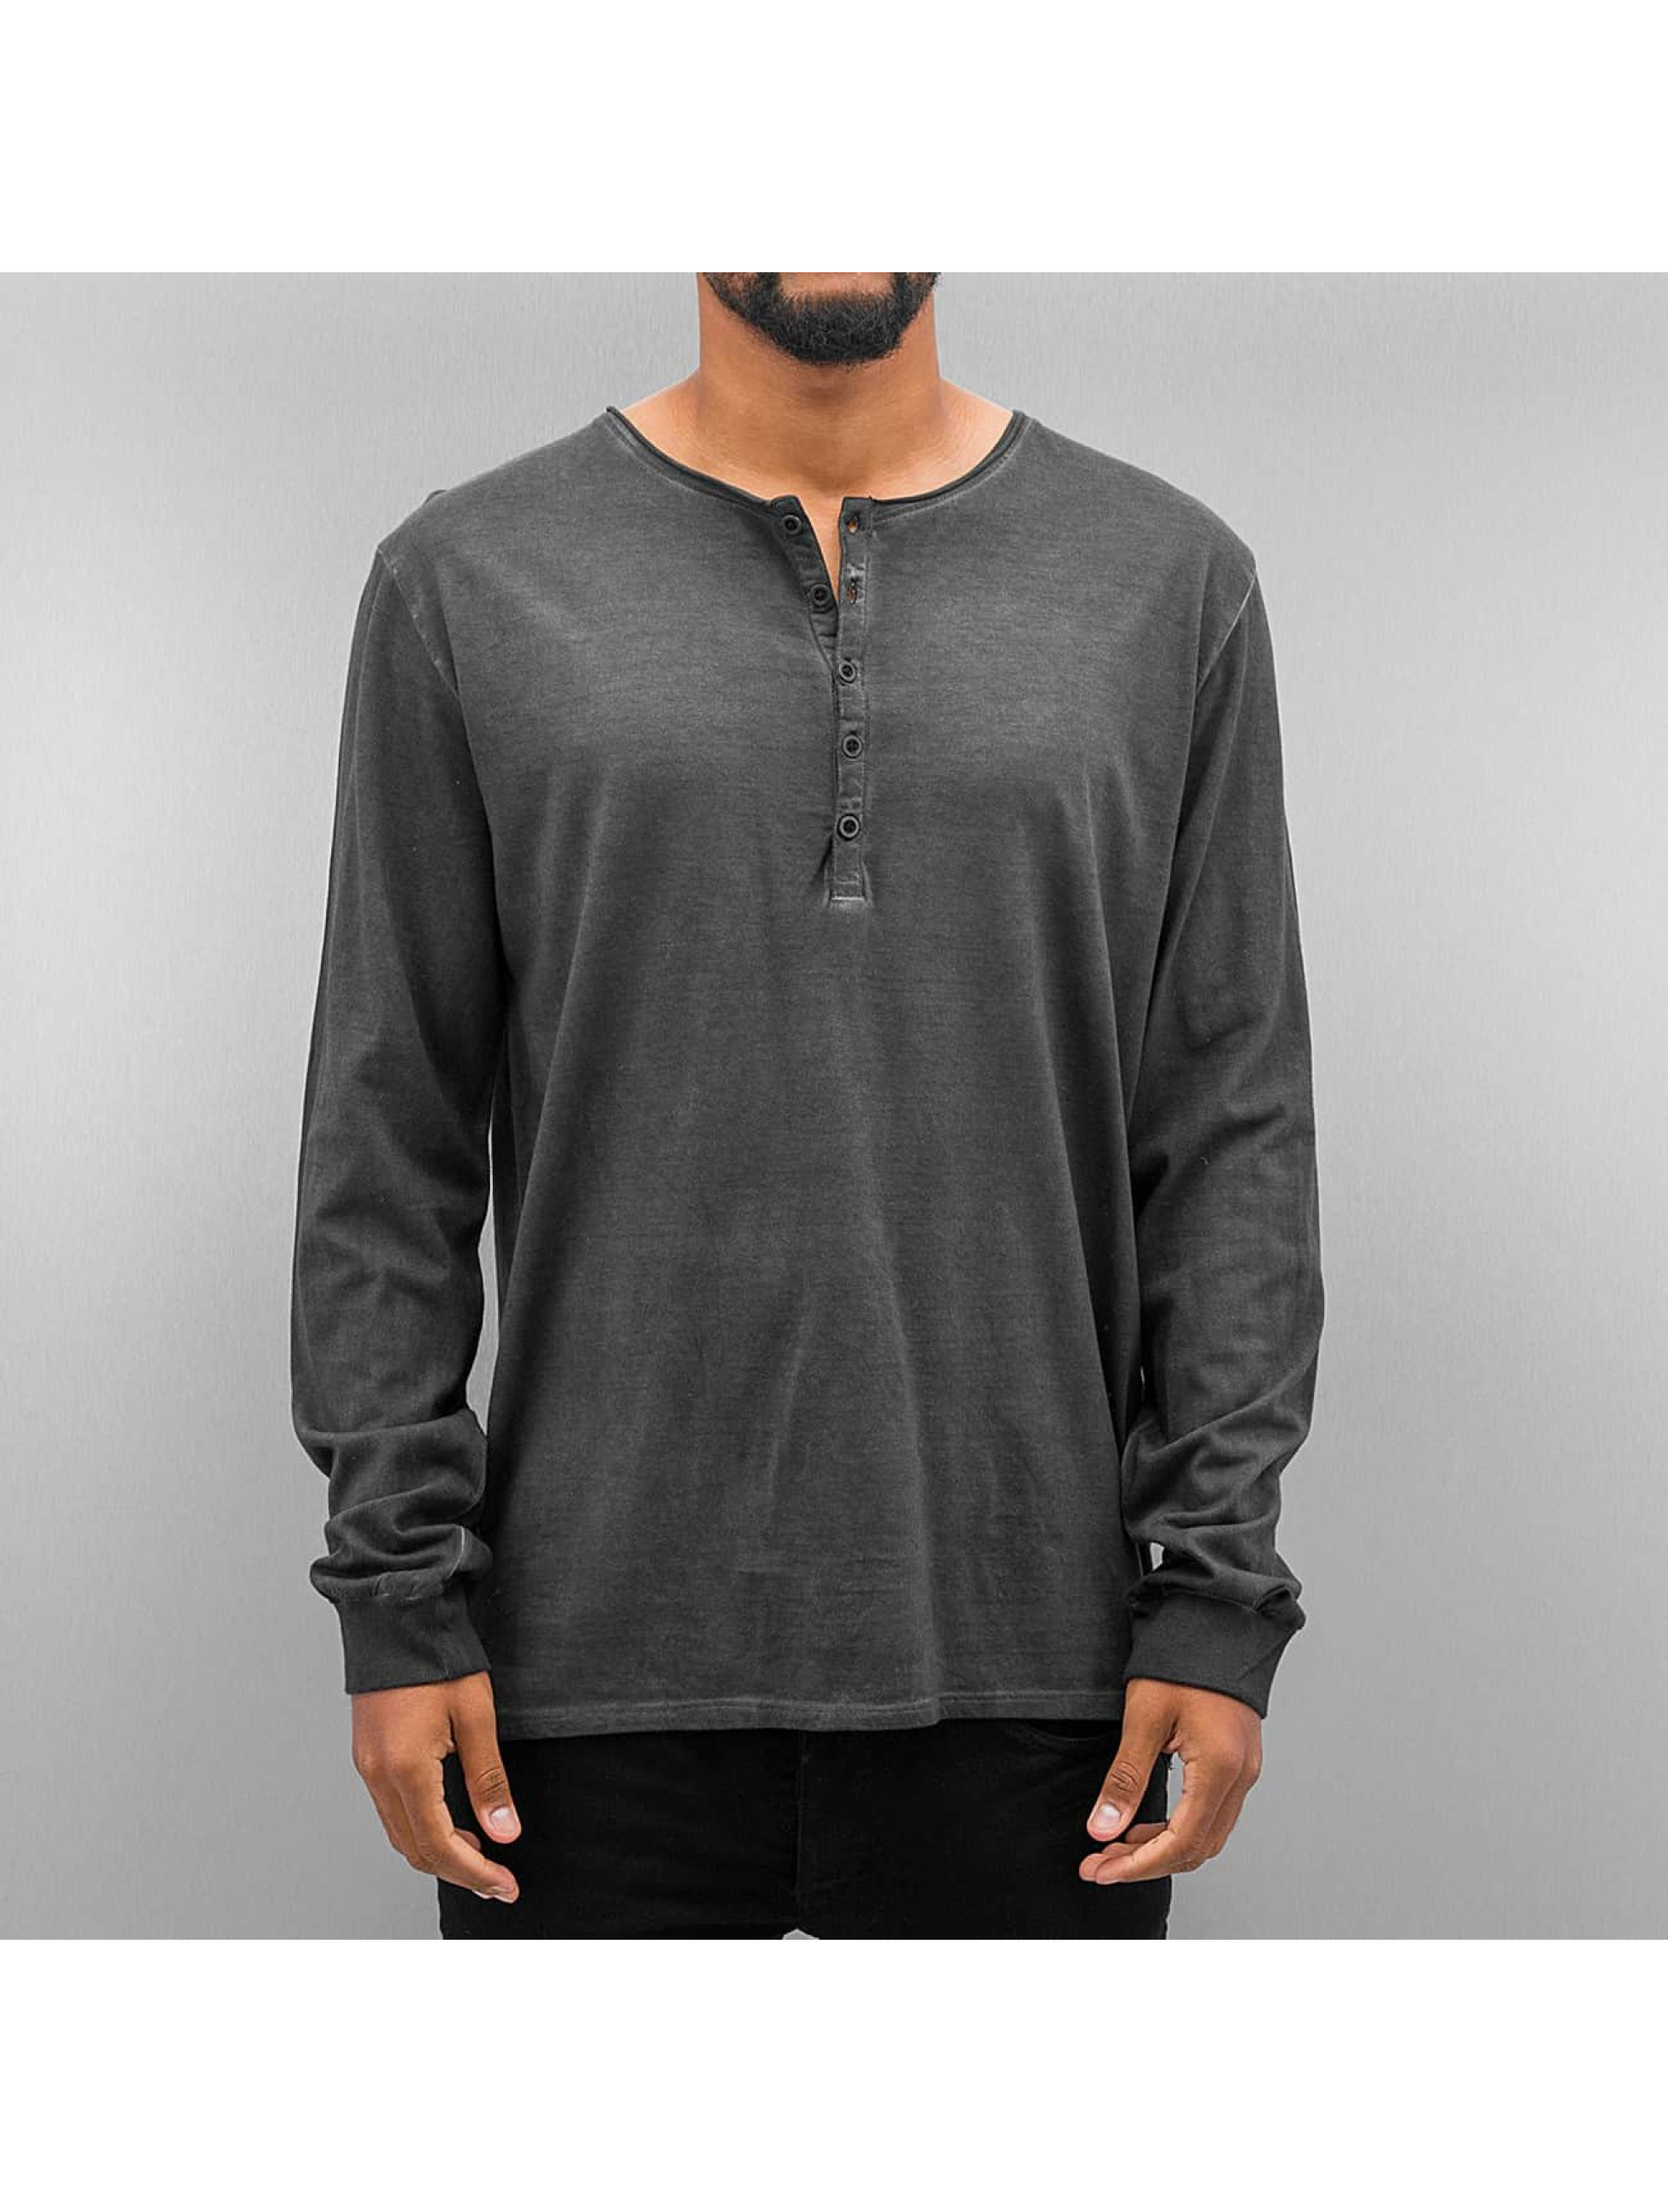 Authentic Style Männer Longsleeve Dyed in grau